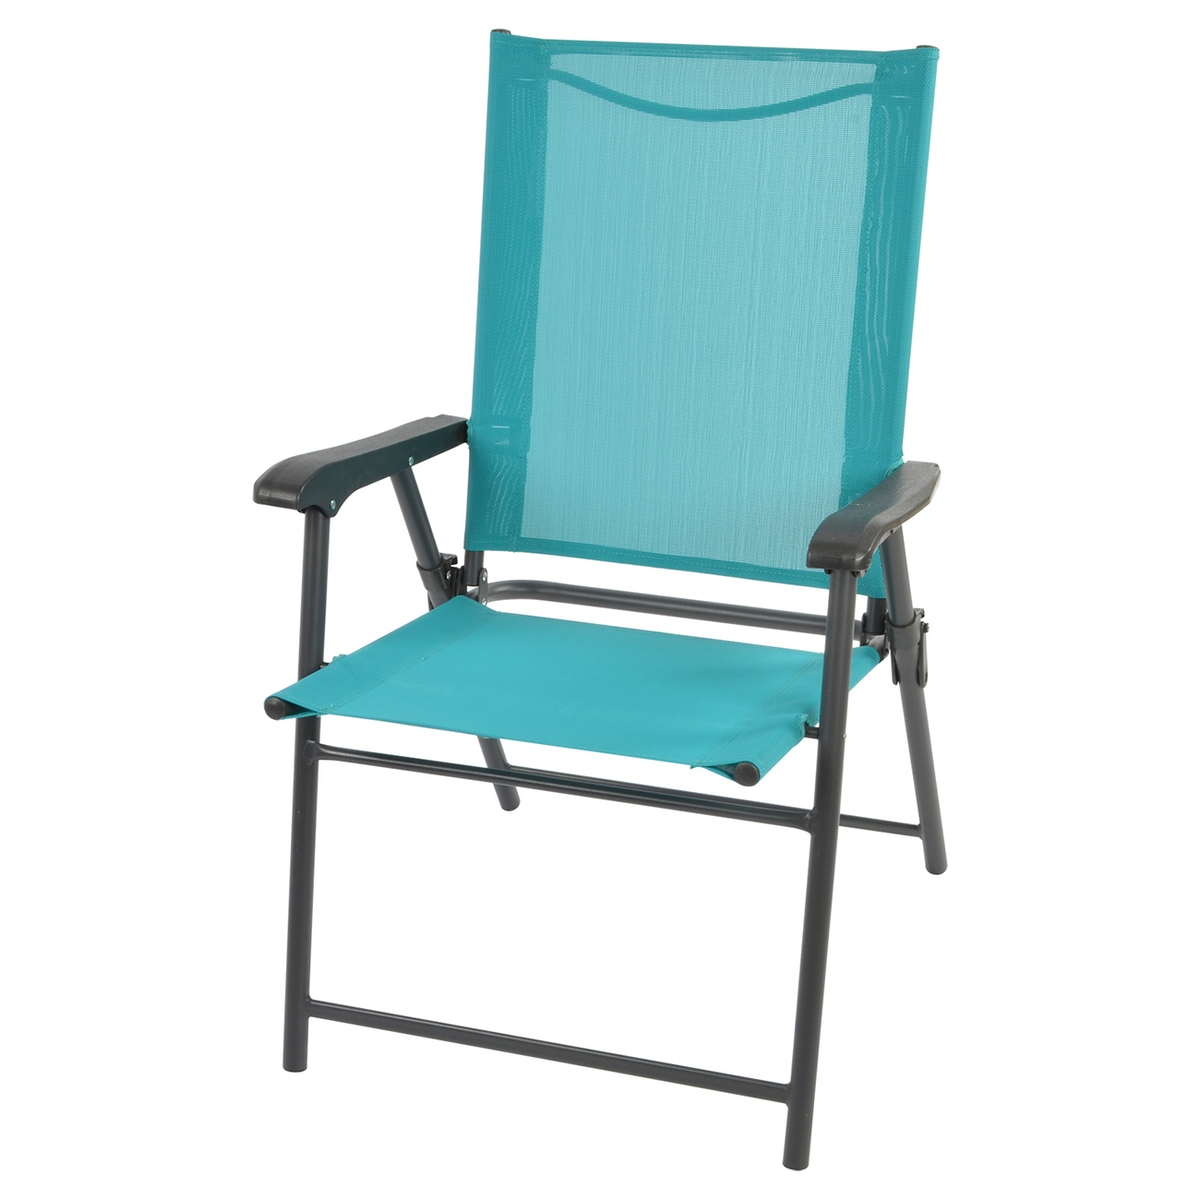 Target Patio Chairs Get To Know More About Target Patio Chairs Homesfeed